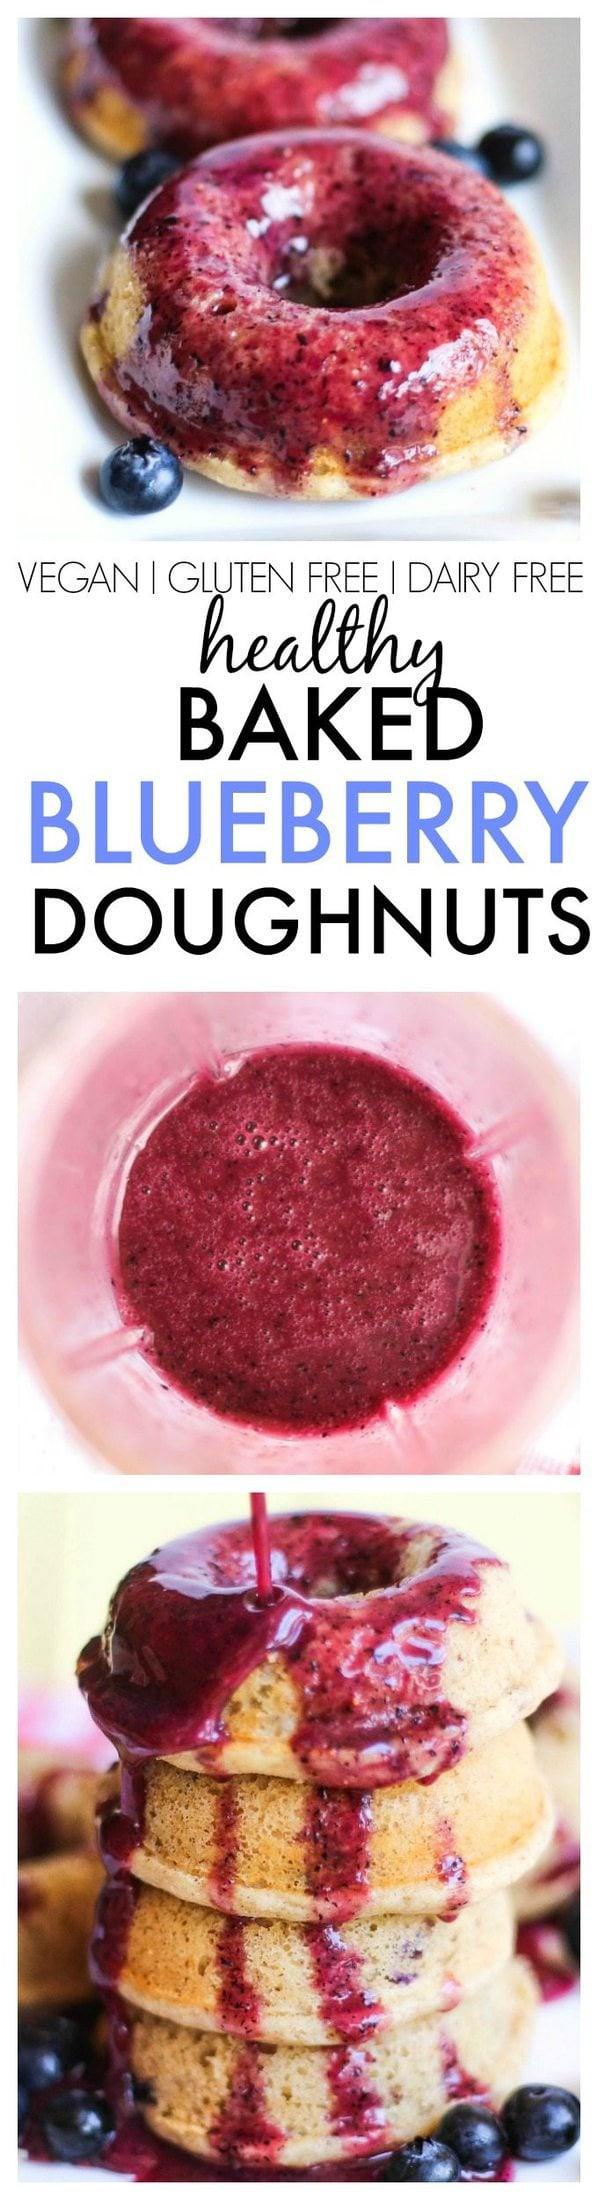 Healthy Baked Blueberry Doughnuts with a blueberry and orange glaze- Fluffy and delicious, these are the perfect snack, dessert or treat to enjoy anytime! {vegan, gluten free, dairy free}- thebigmansworld.com